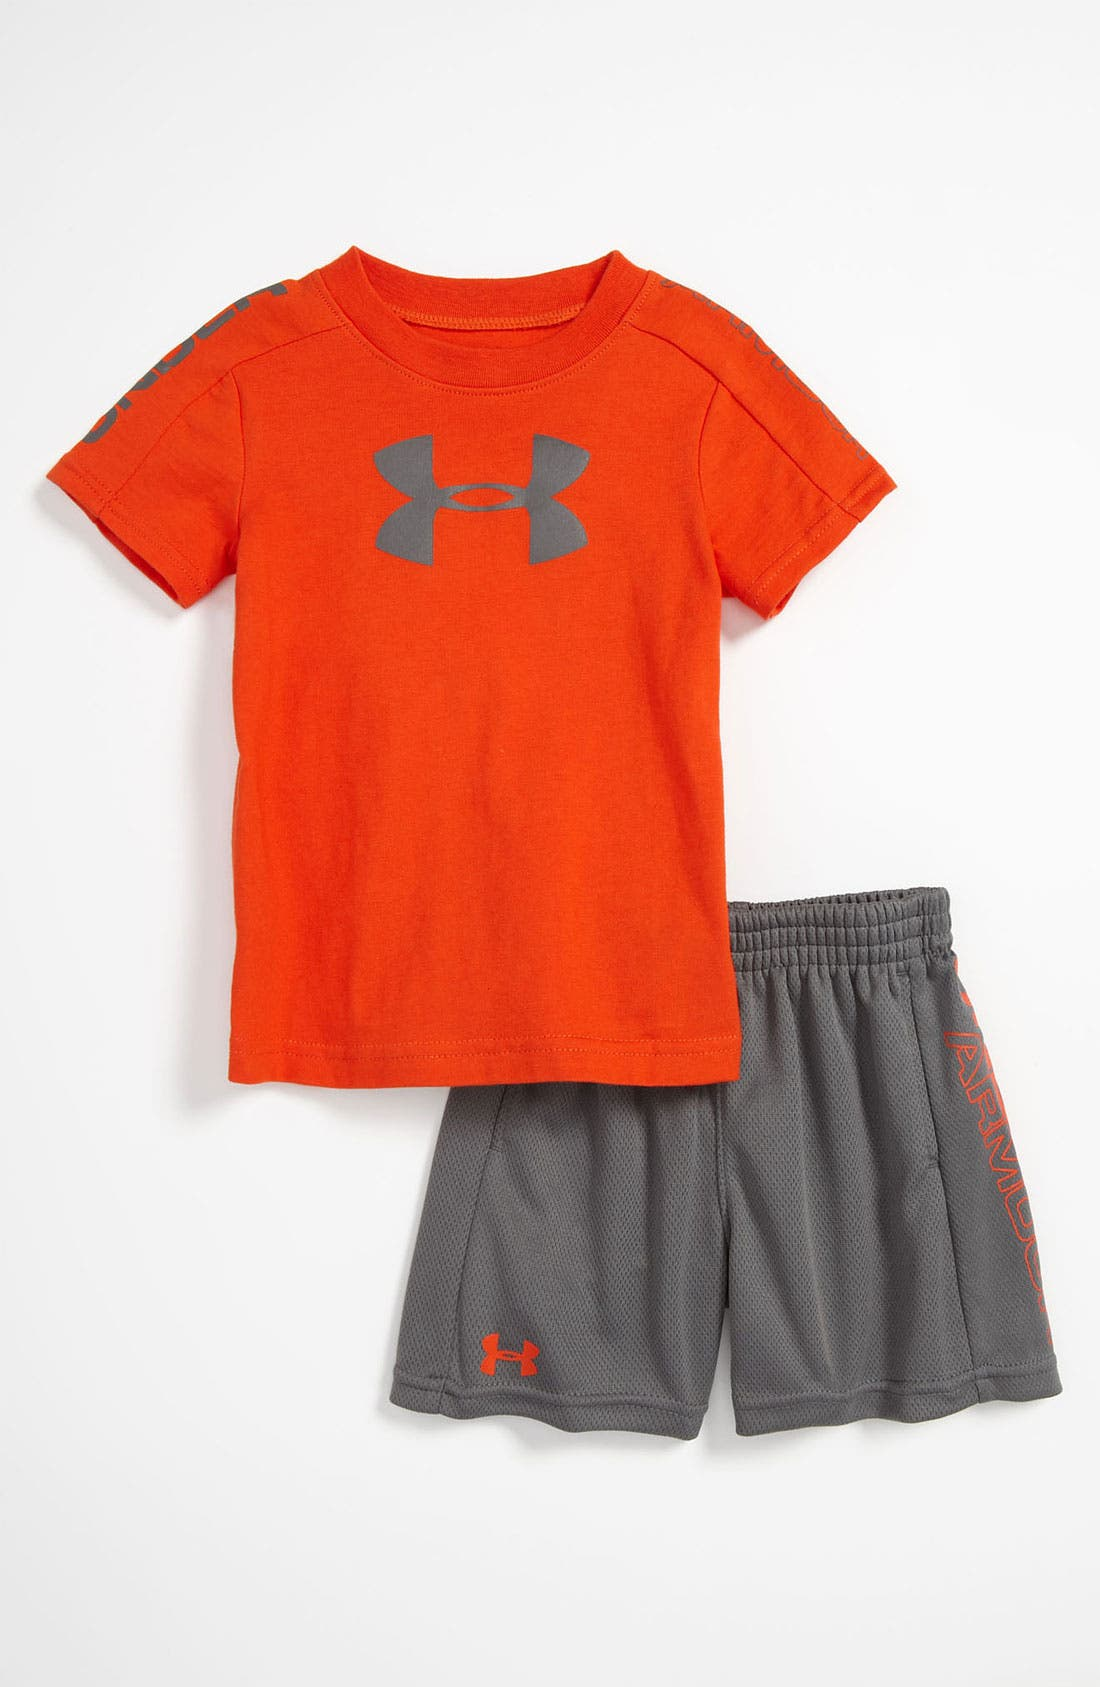 Alternate Image 1 Selected - Under Armour 'Integrity 2.0' T-Shirt & Shorts (Infant)